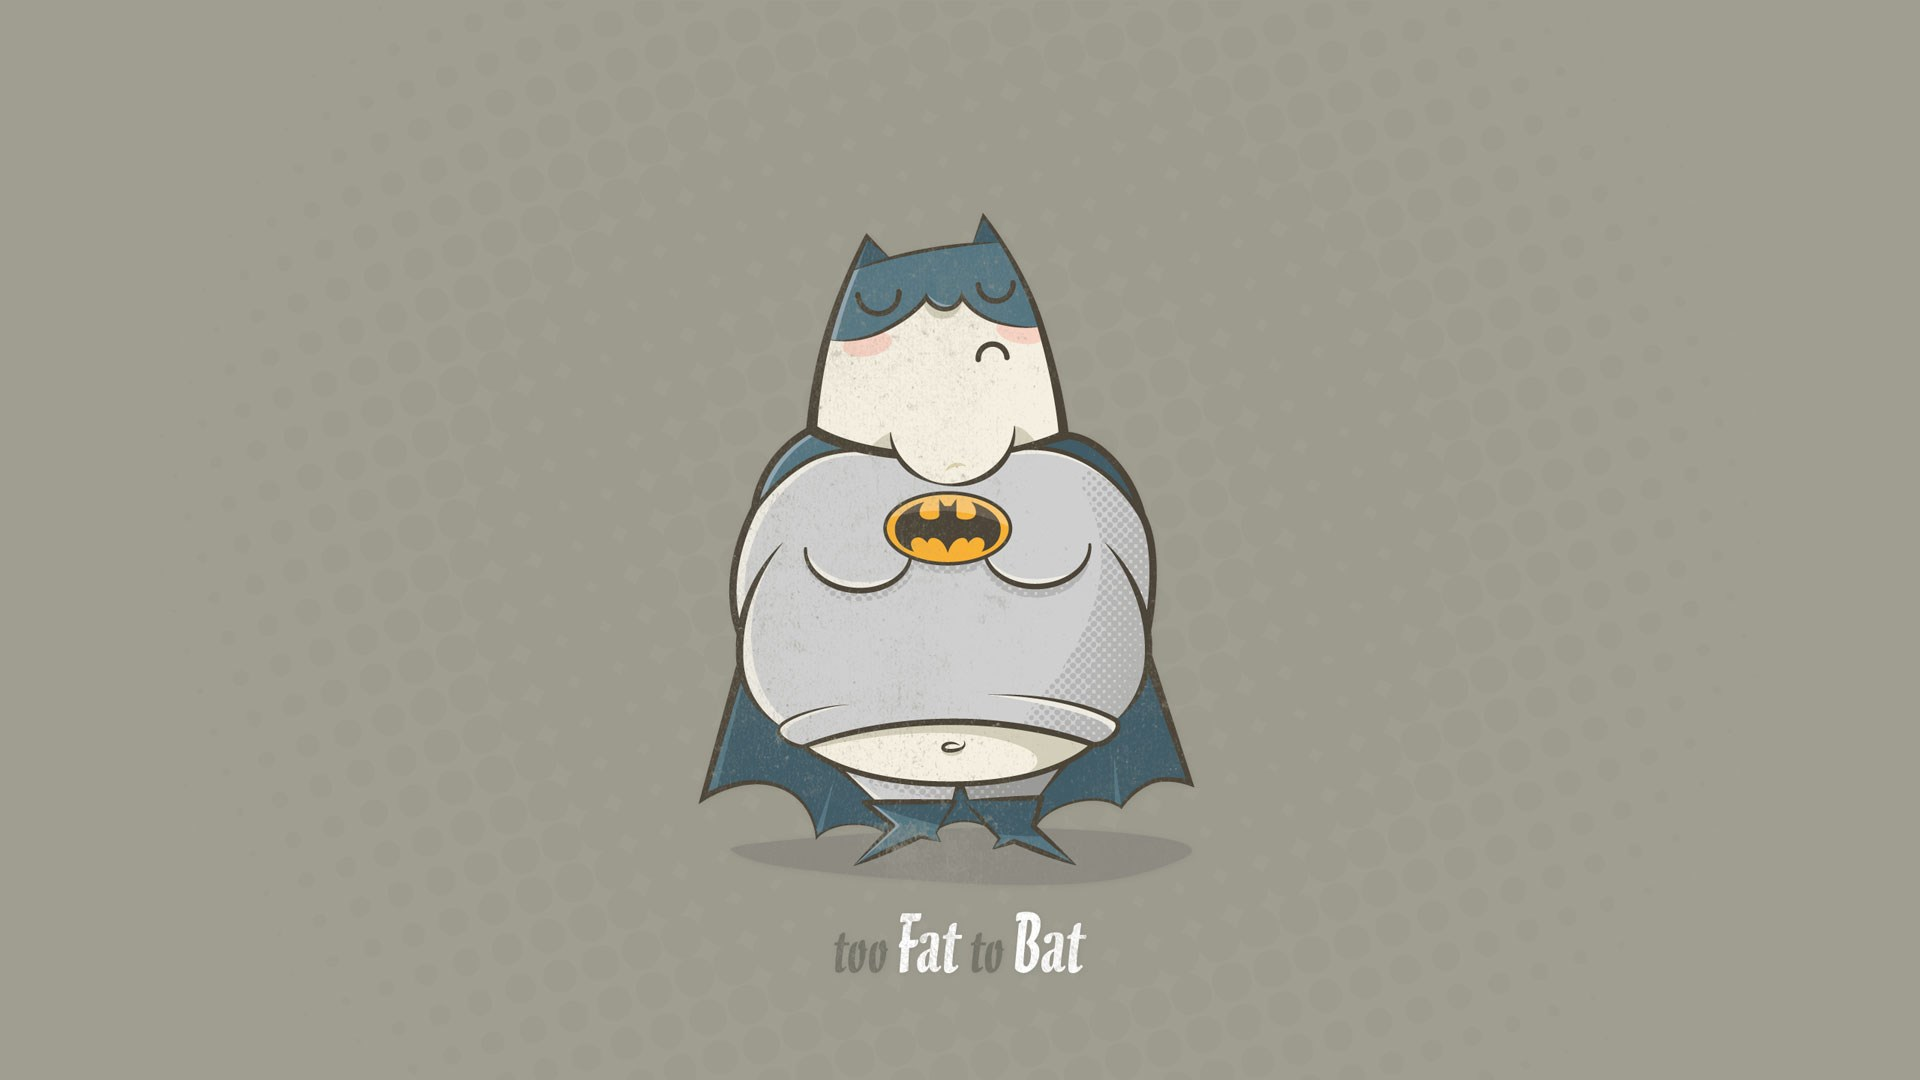 fatty-bat-hd-wallpaper